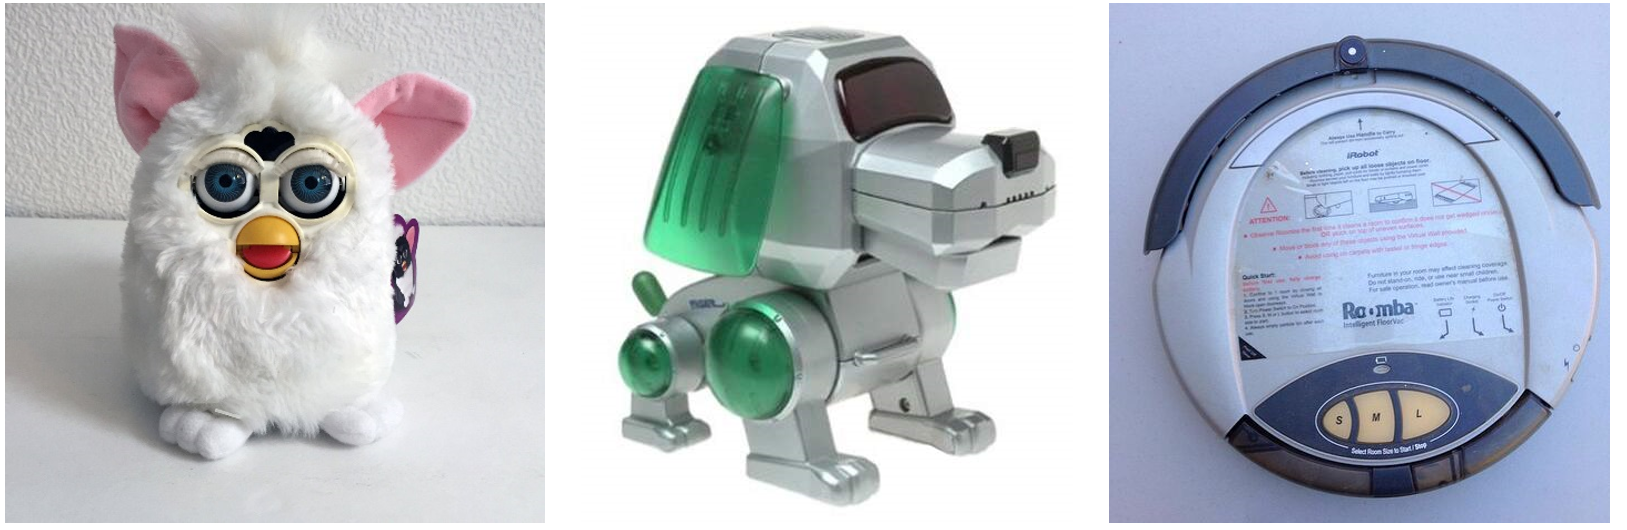 From left to right: Furby, Robo-chi Pet dog, Roomba  Source:  Etsy ,  The Old Robot Dogs ,  Pinterest